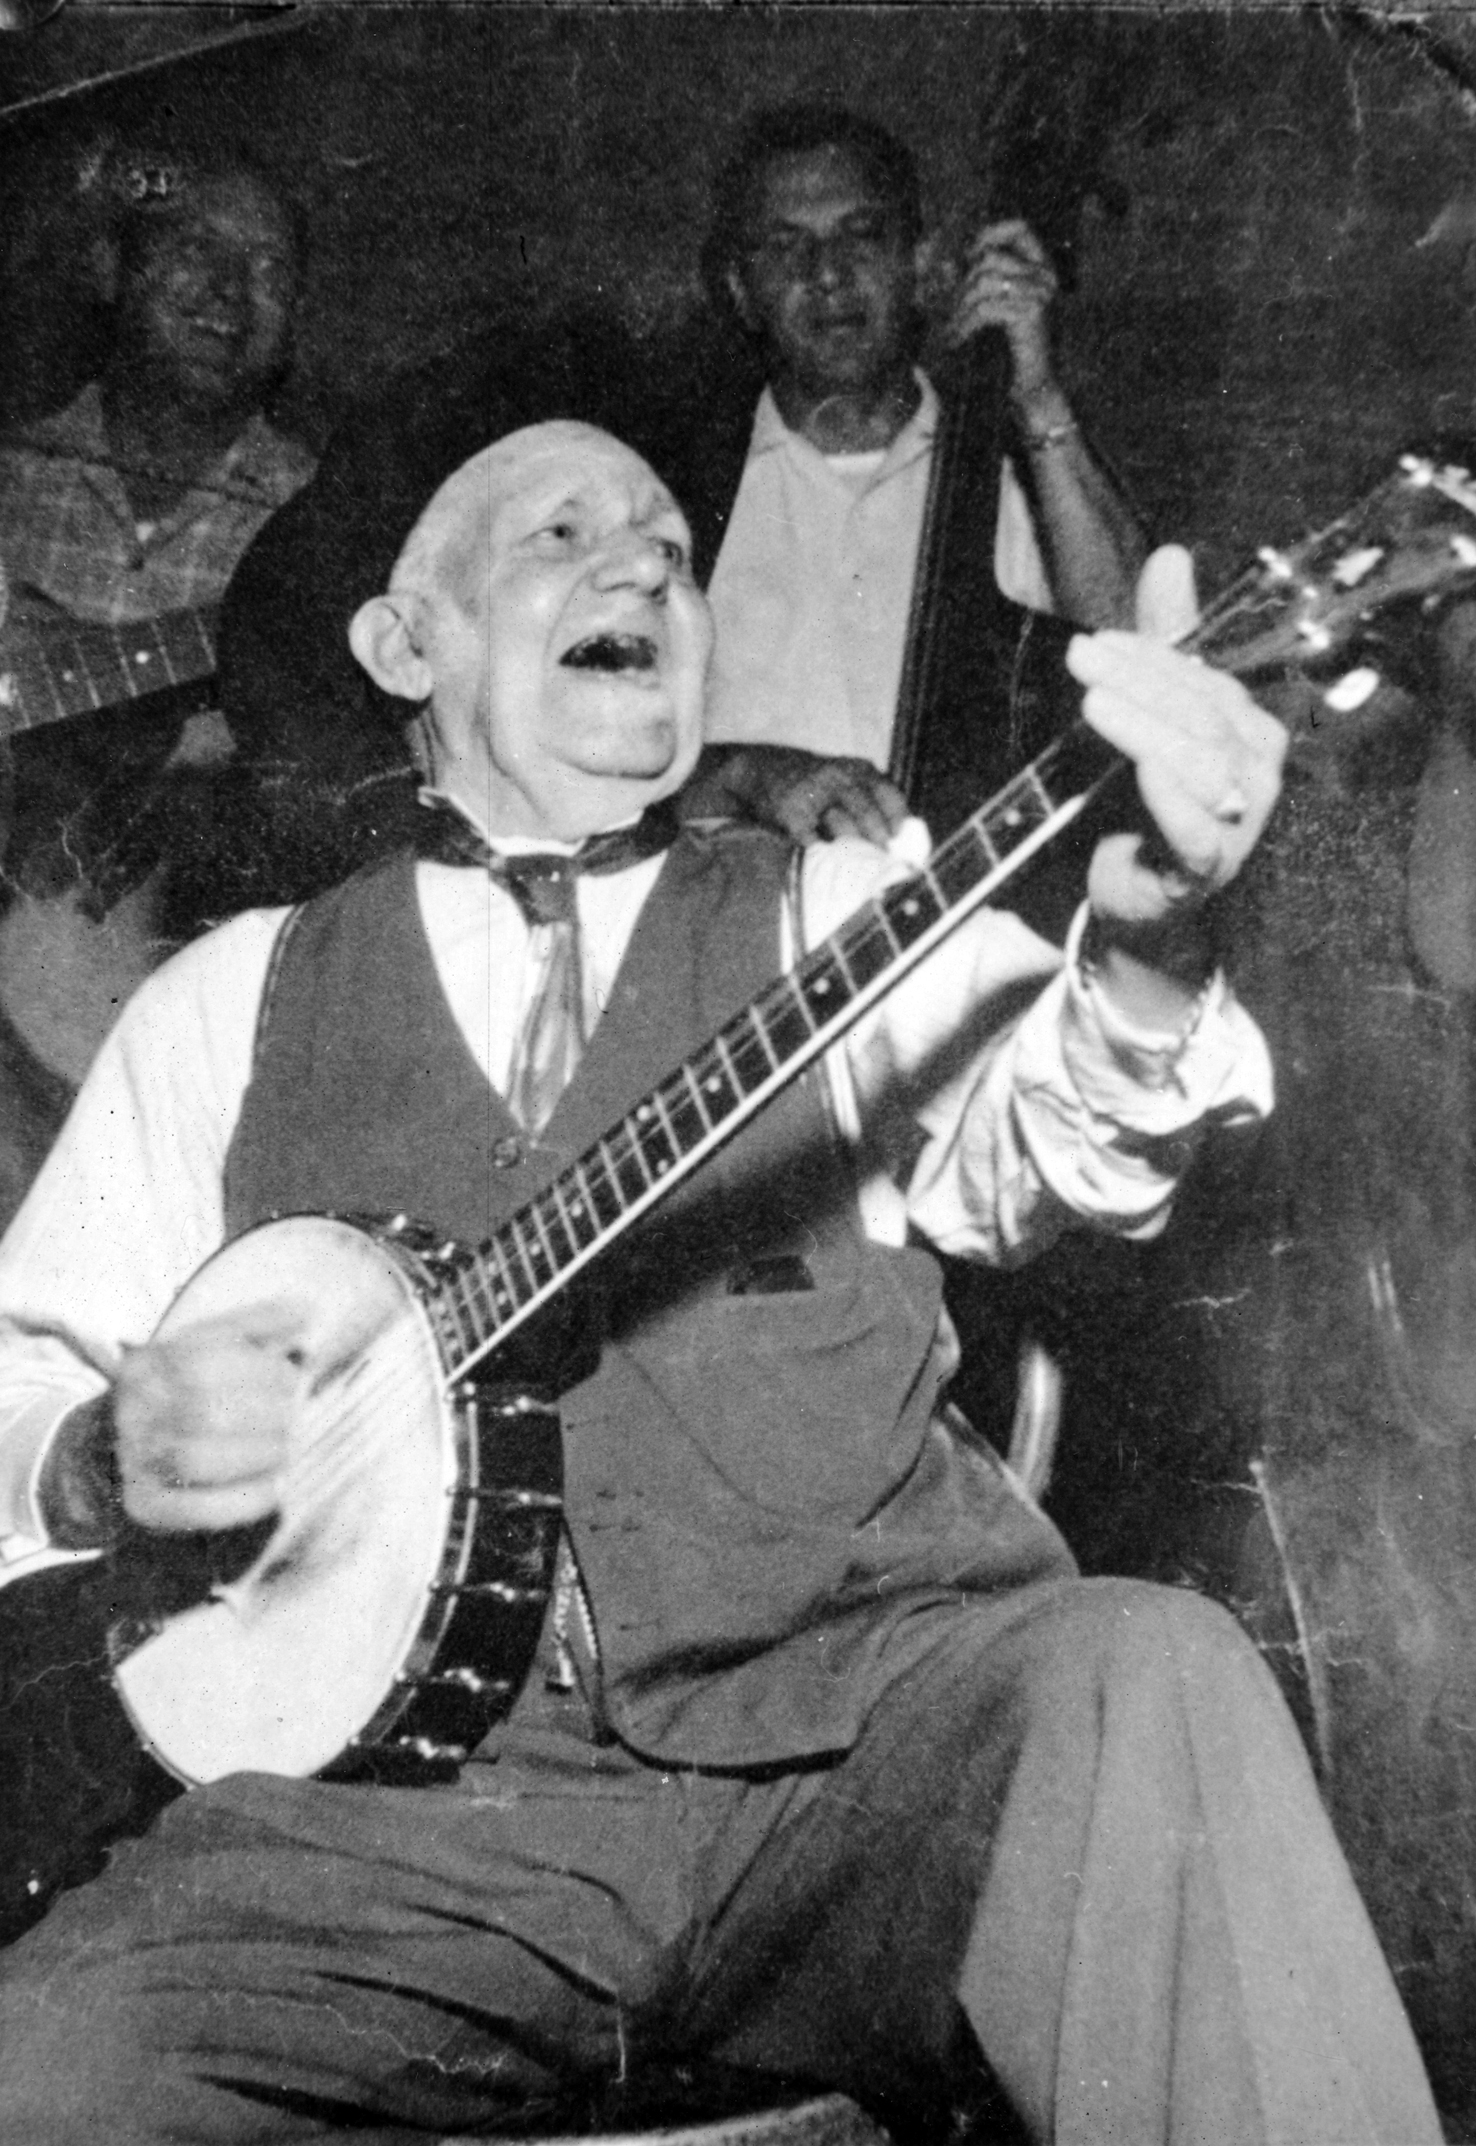 Caption: Uncle Dave Macon was an uproarious entertainer in the old minstrel show, Vaudeville and medicine show styles, and an early Grand Ole Opry star.  , Credit: Public Domain